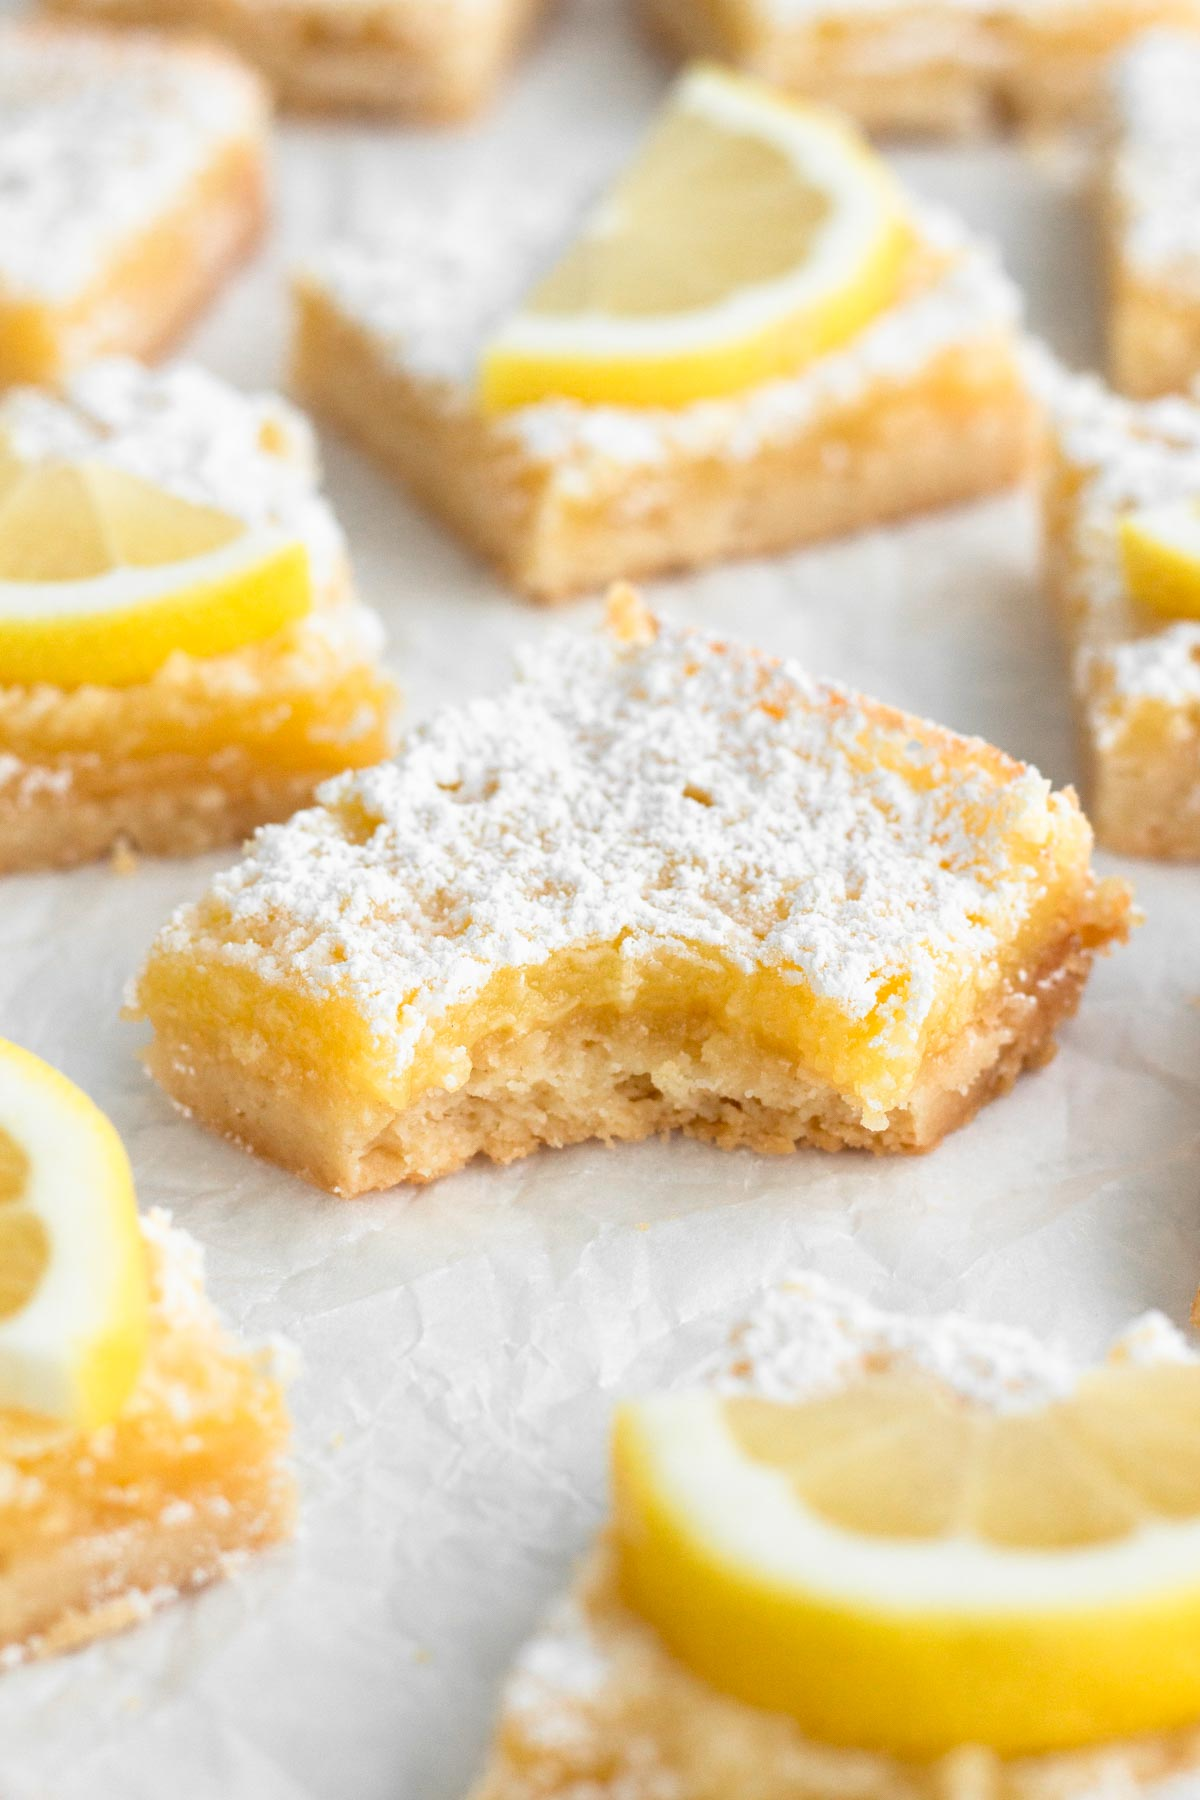 angled view of lemon bar with a bite missing